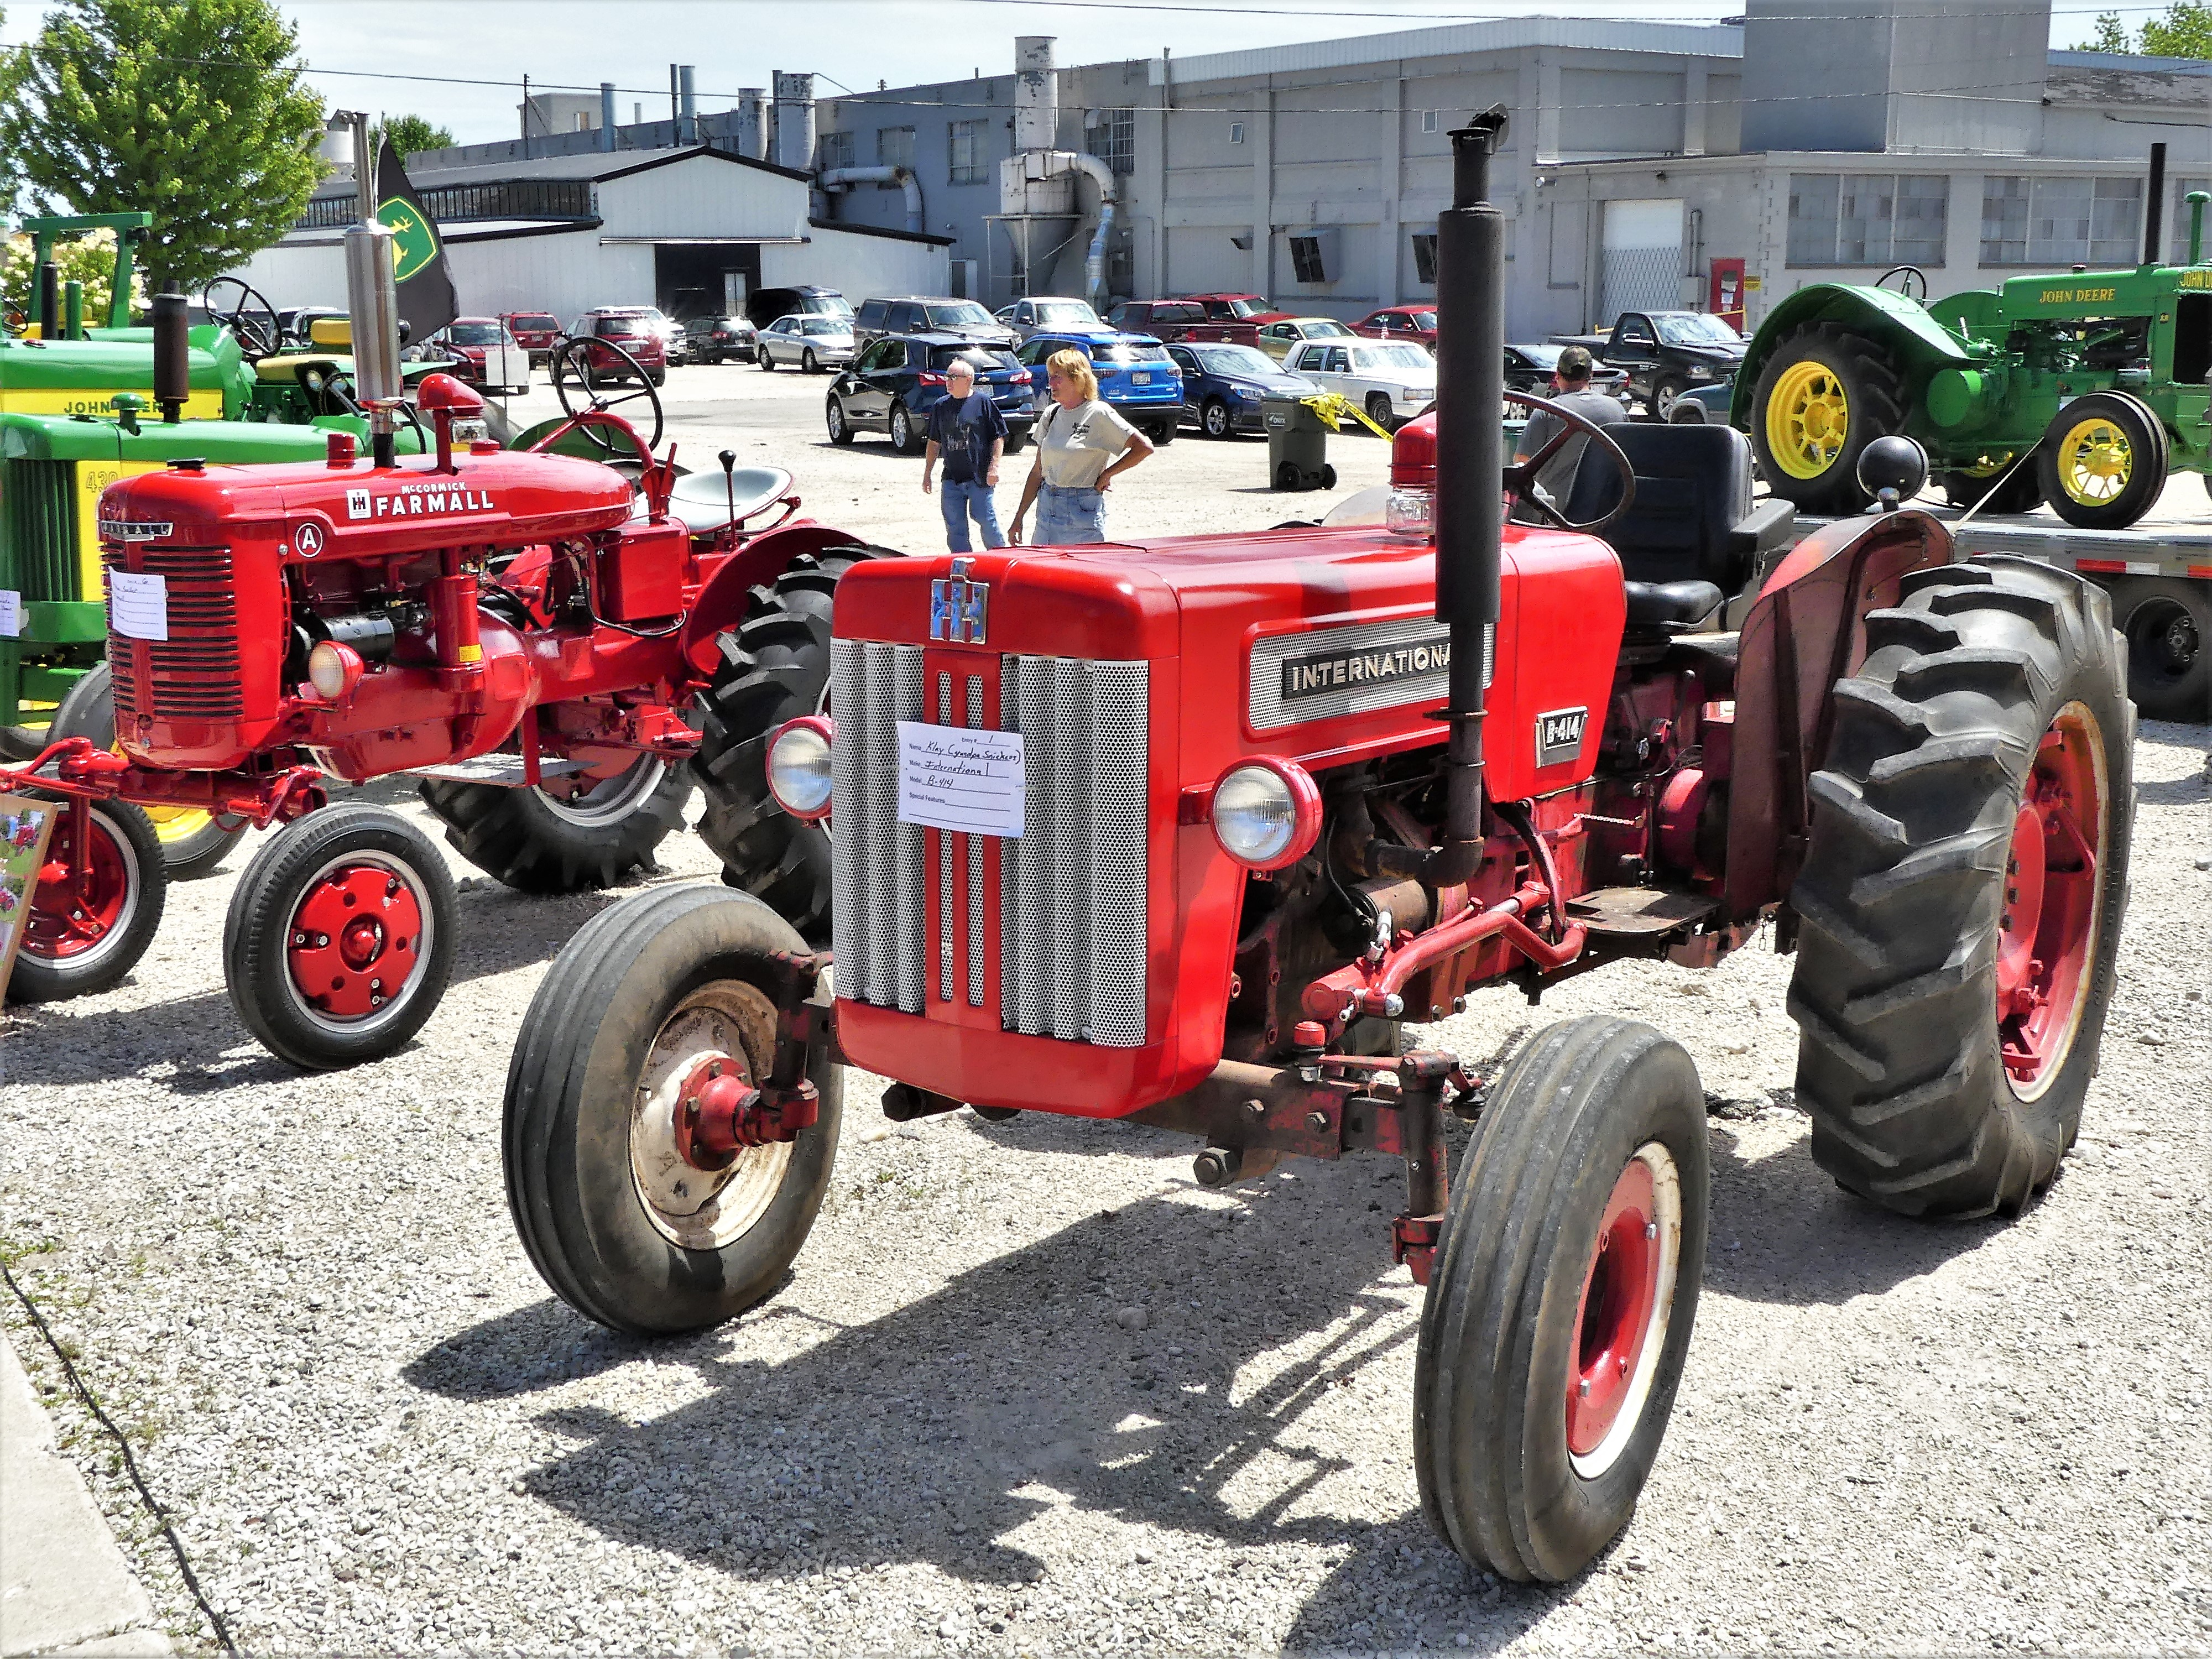 and tractors too